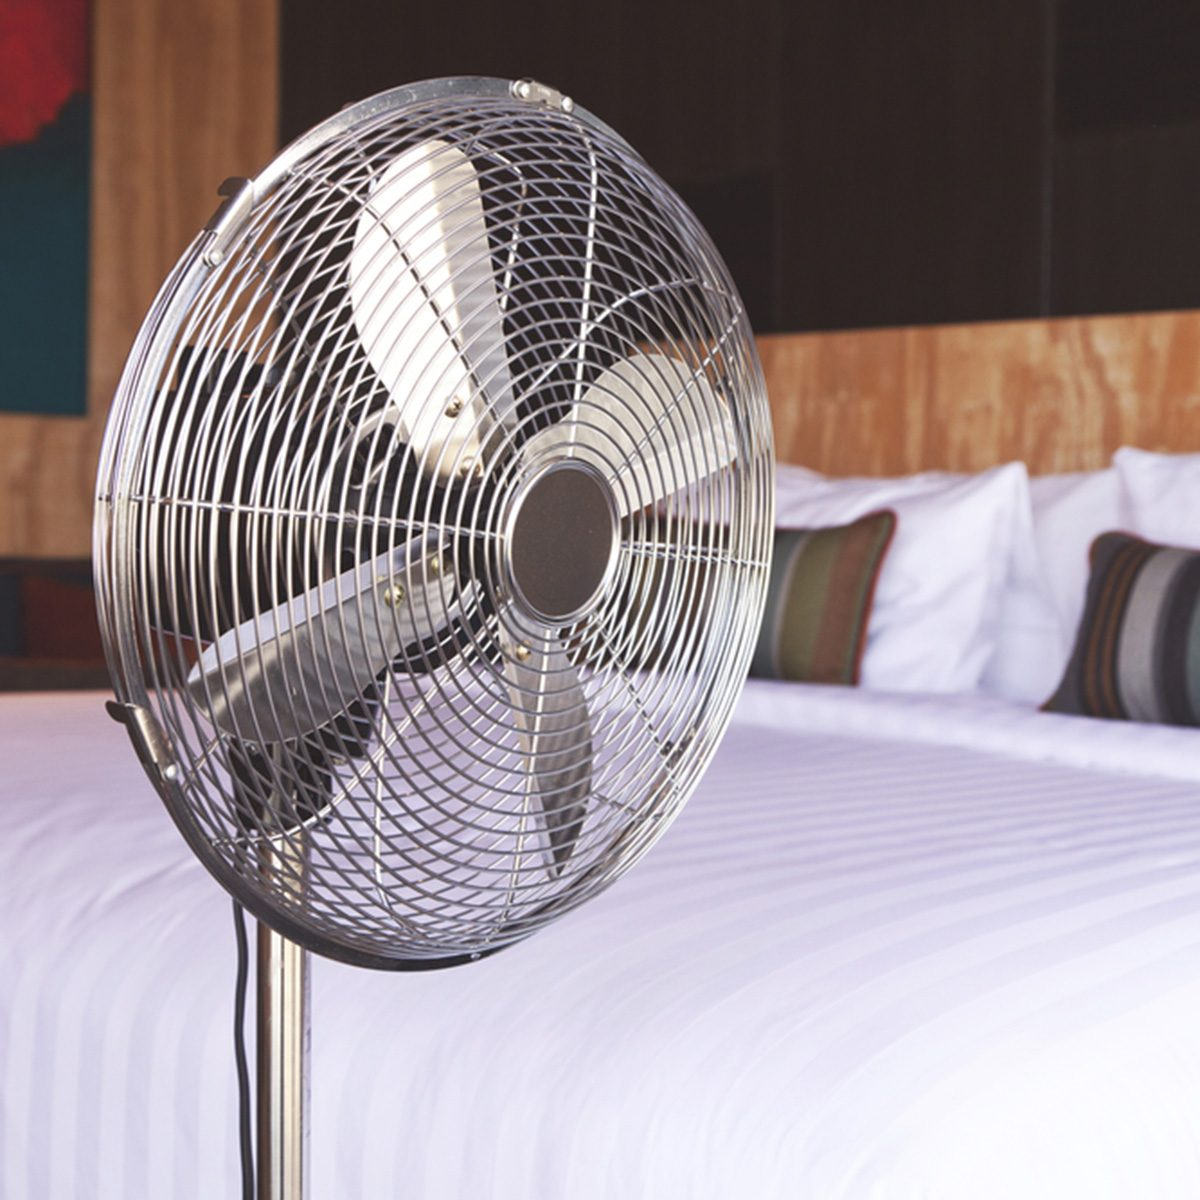 electric fan in the room; Shutterstock ID 336276917; Job (TFH, TOH, RD, BNB, CWM, CM): Taste of Home